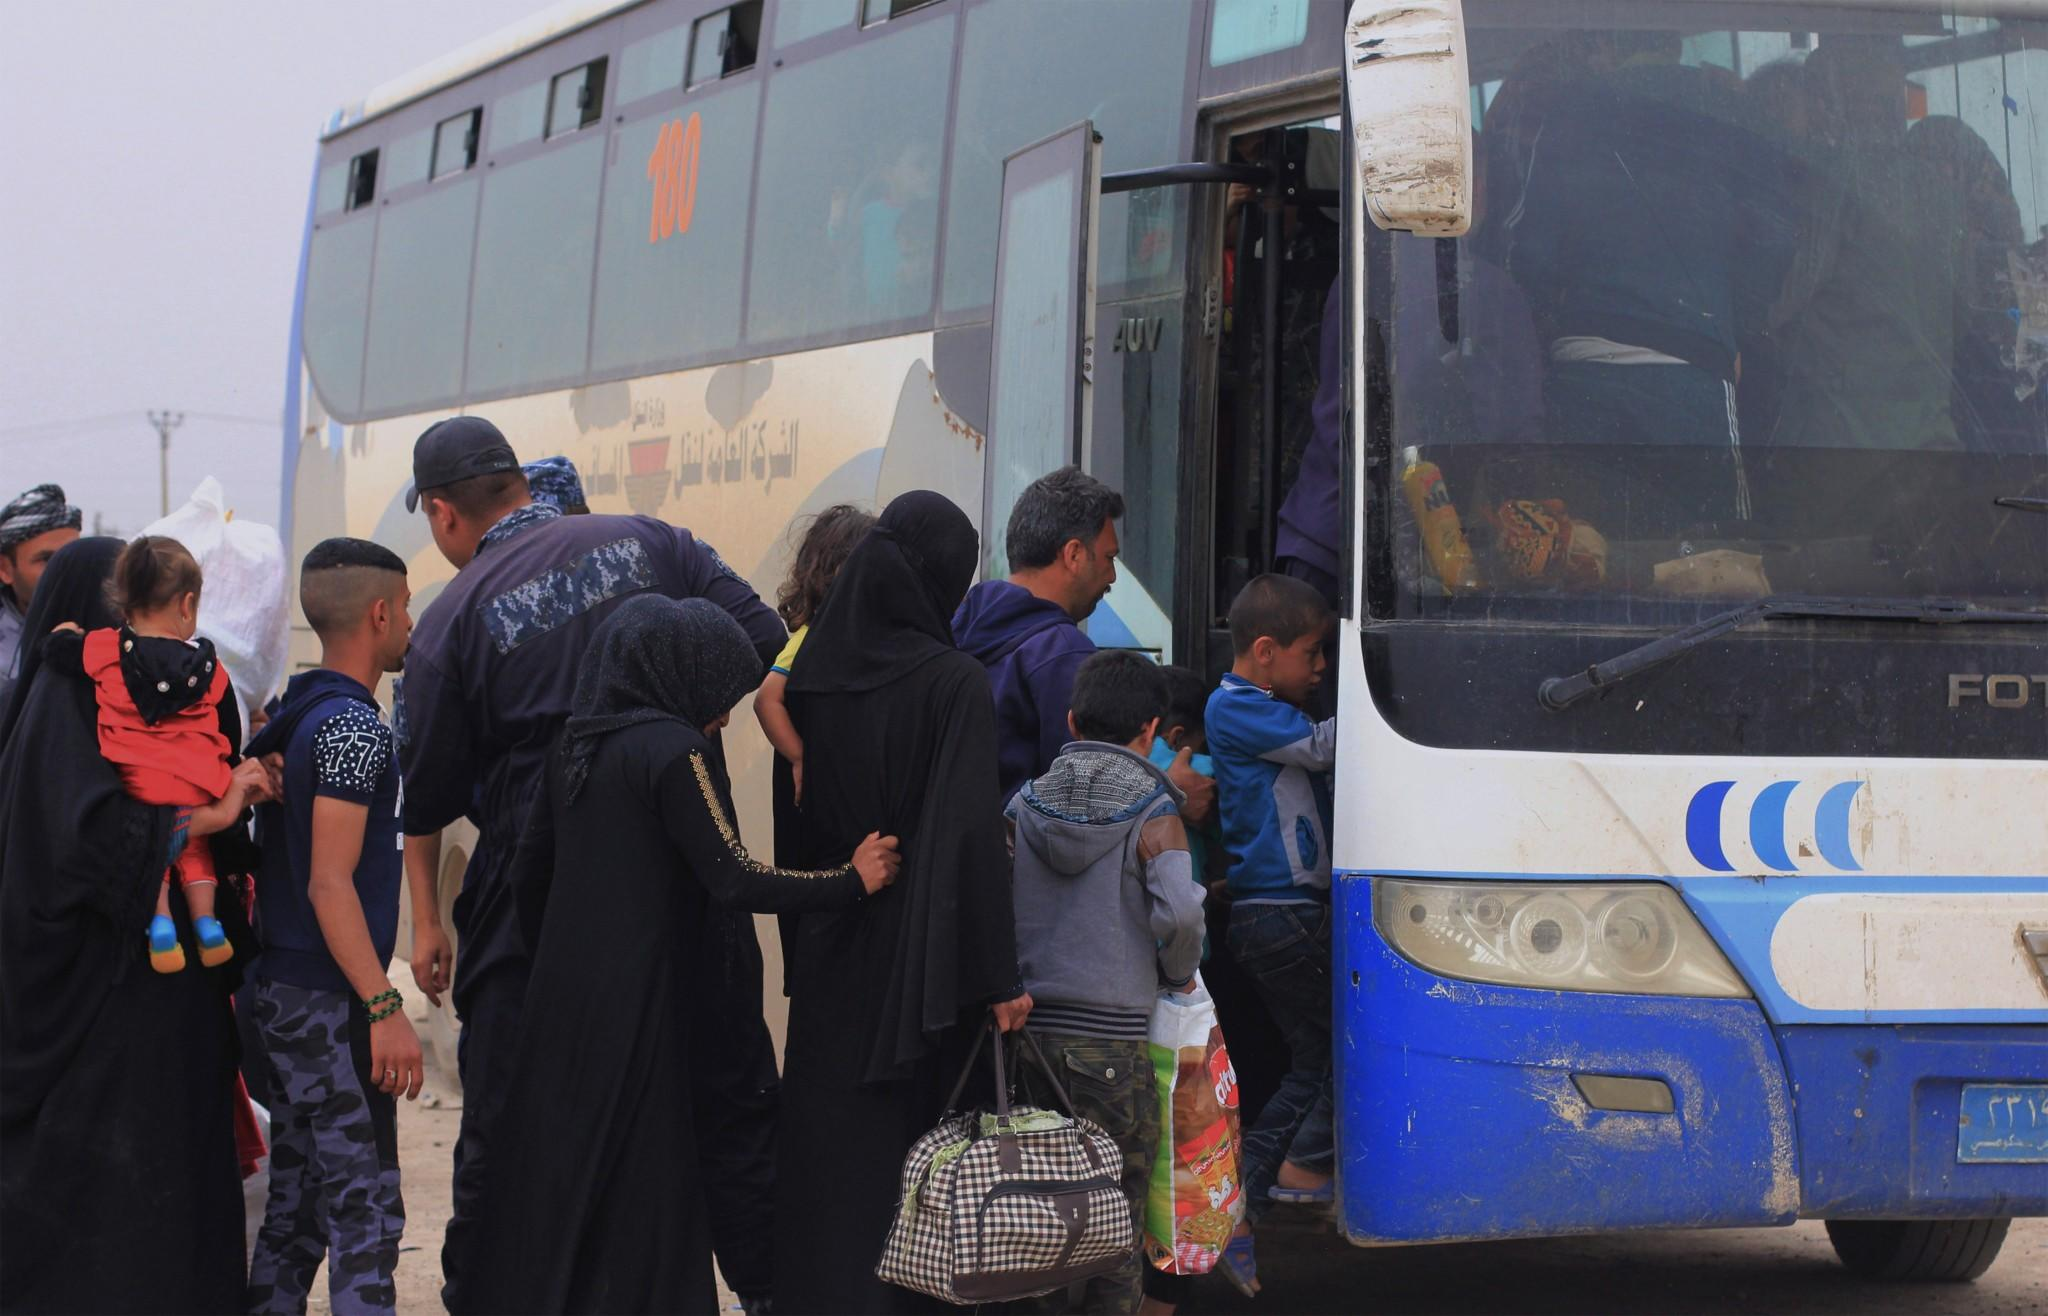 Having fled their home only weeks before, residents of Mosul board a bus to return